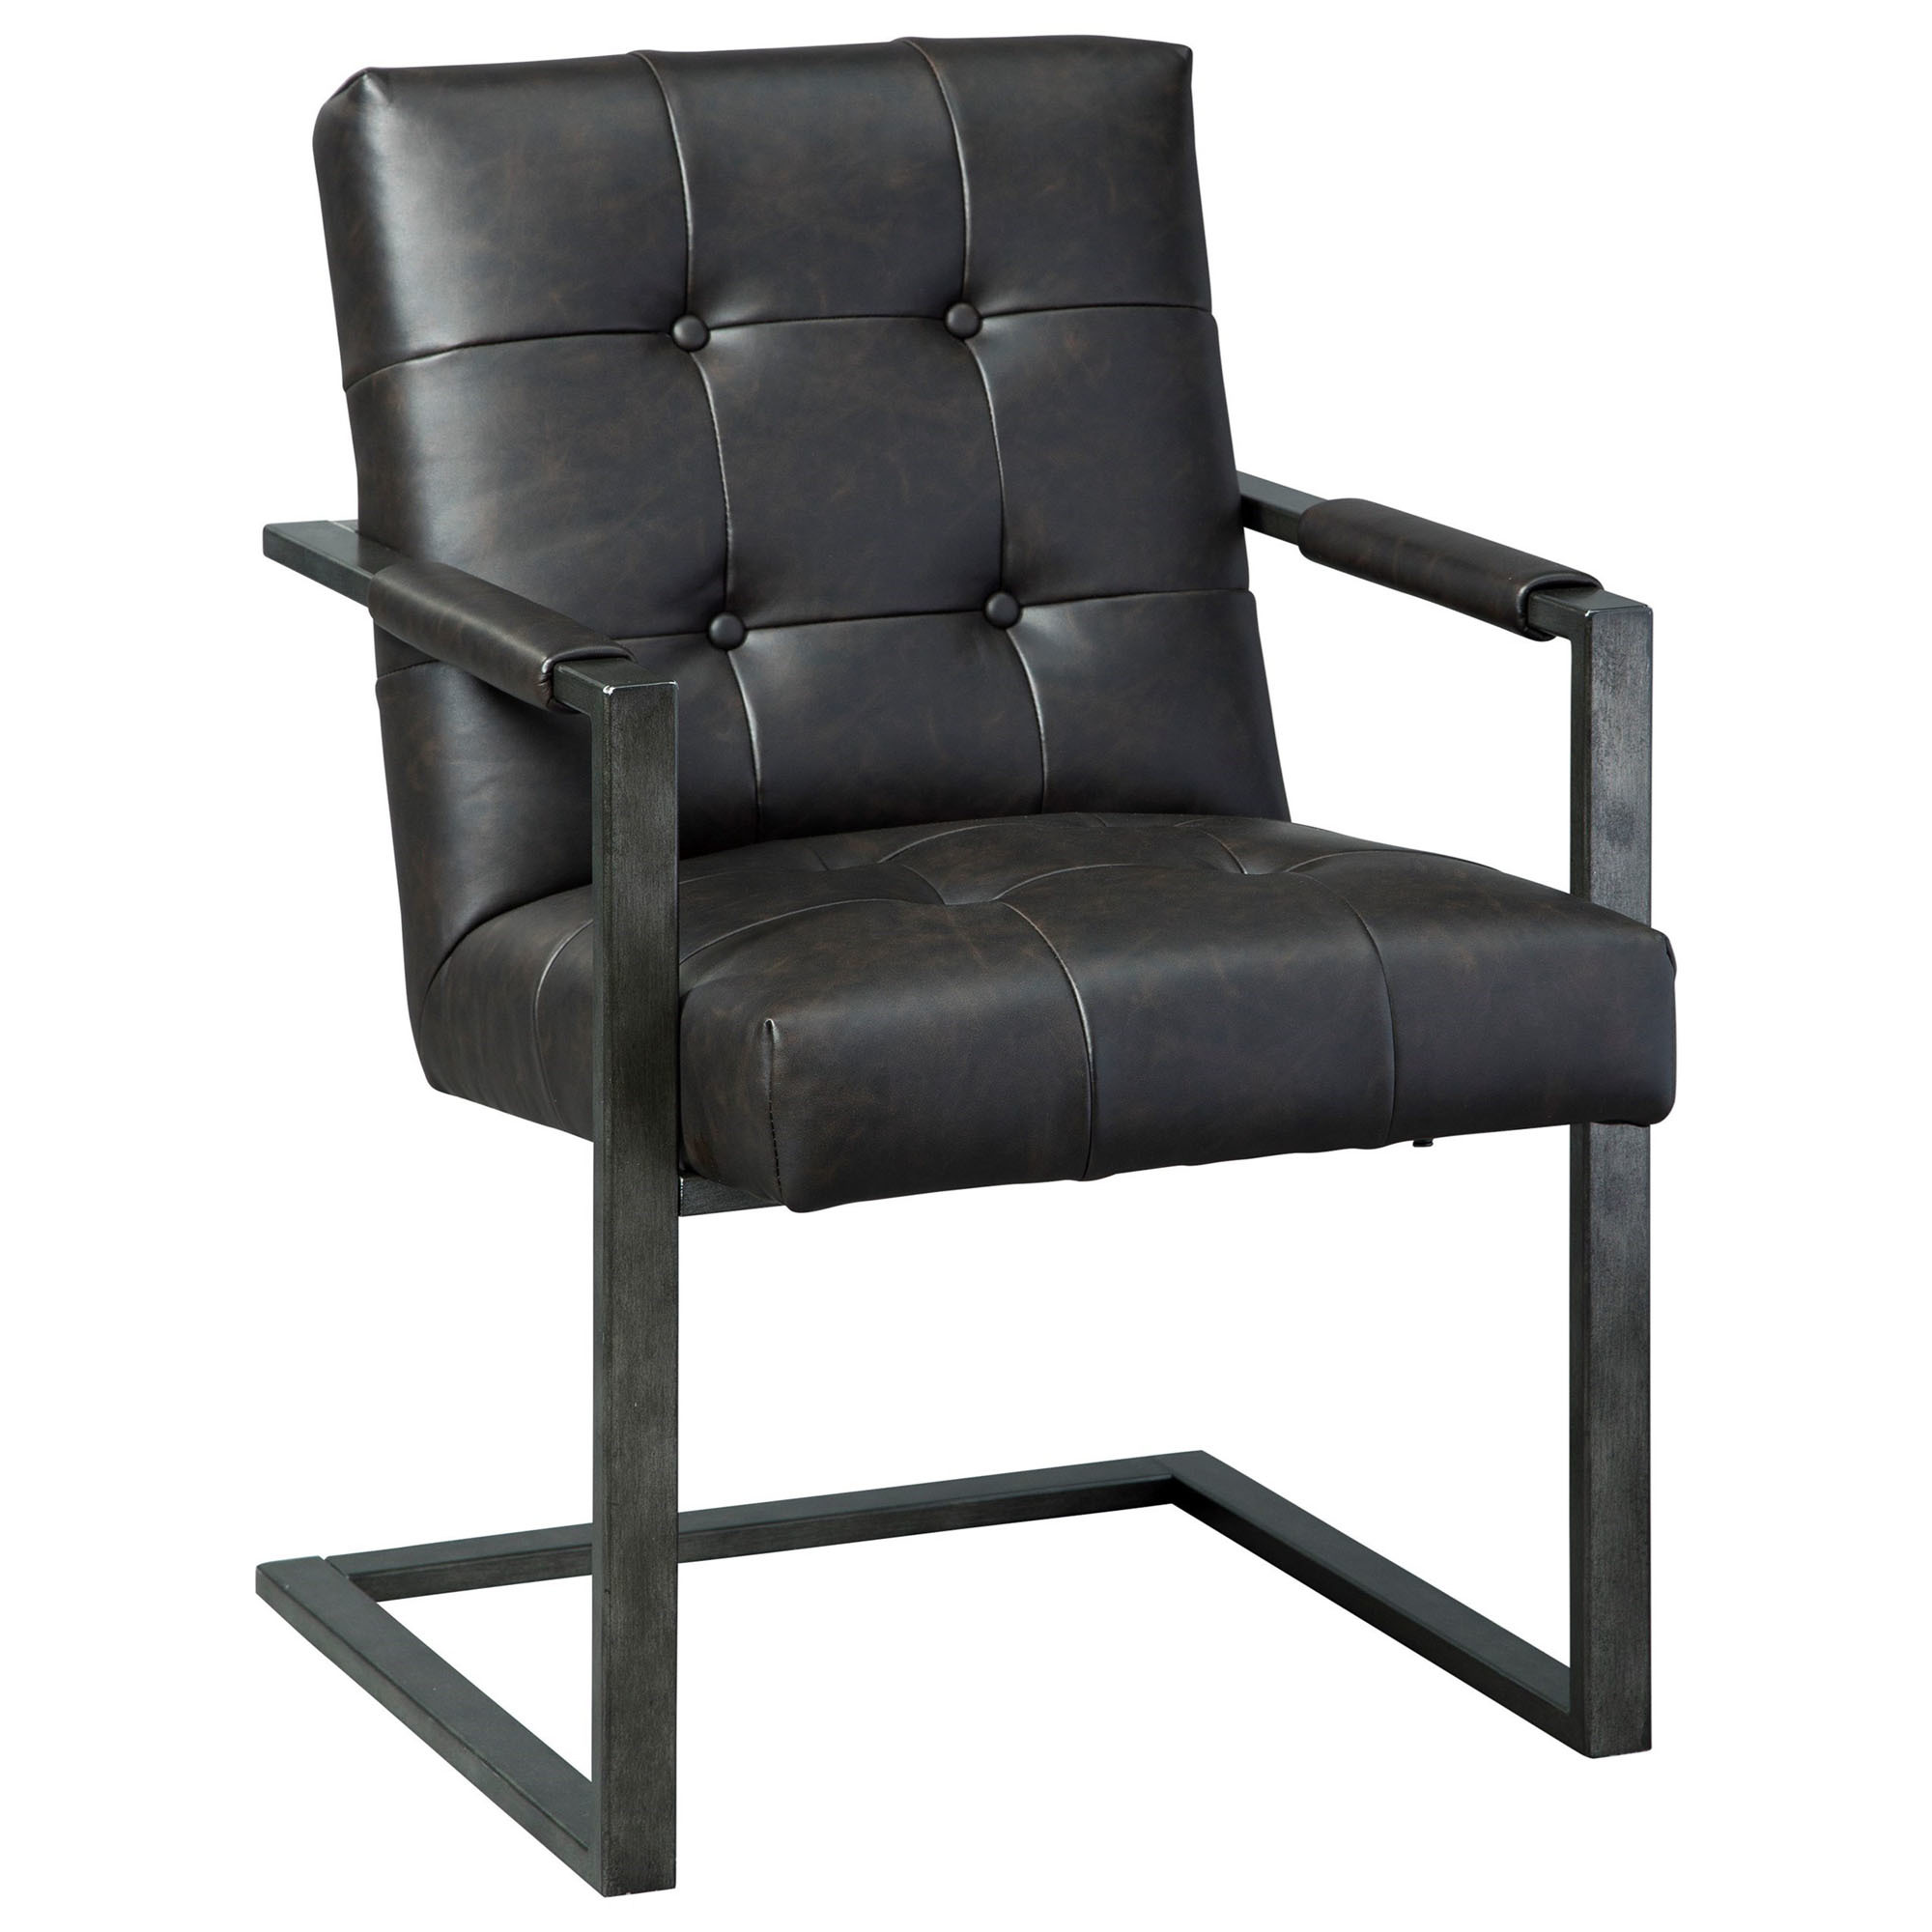 NEW Starmore Industrial Chair Belvedere Living fice Chairs